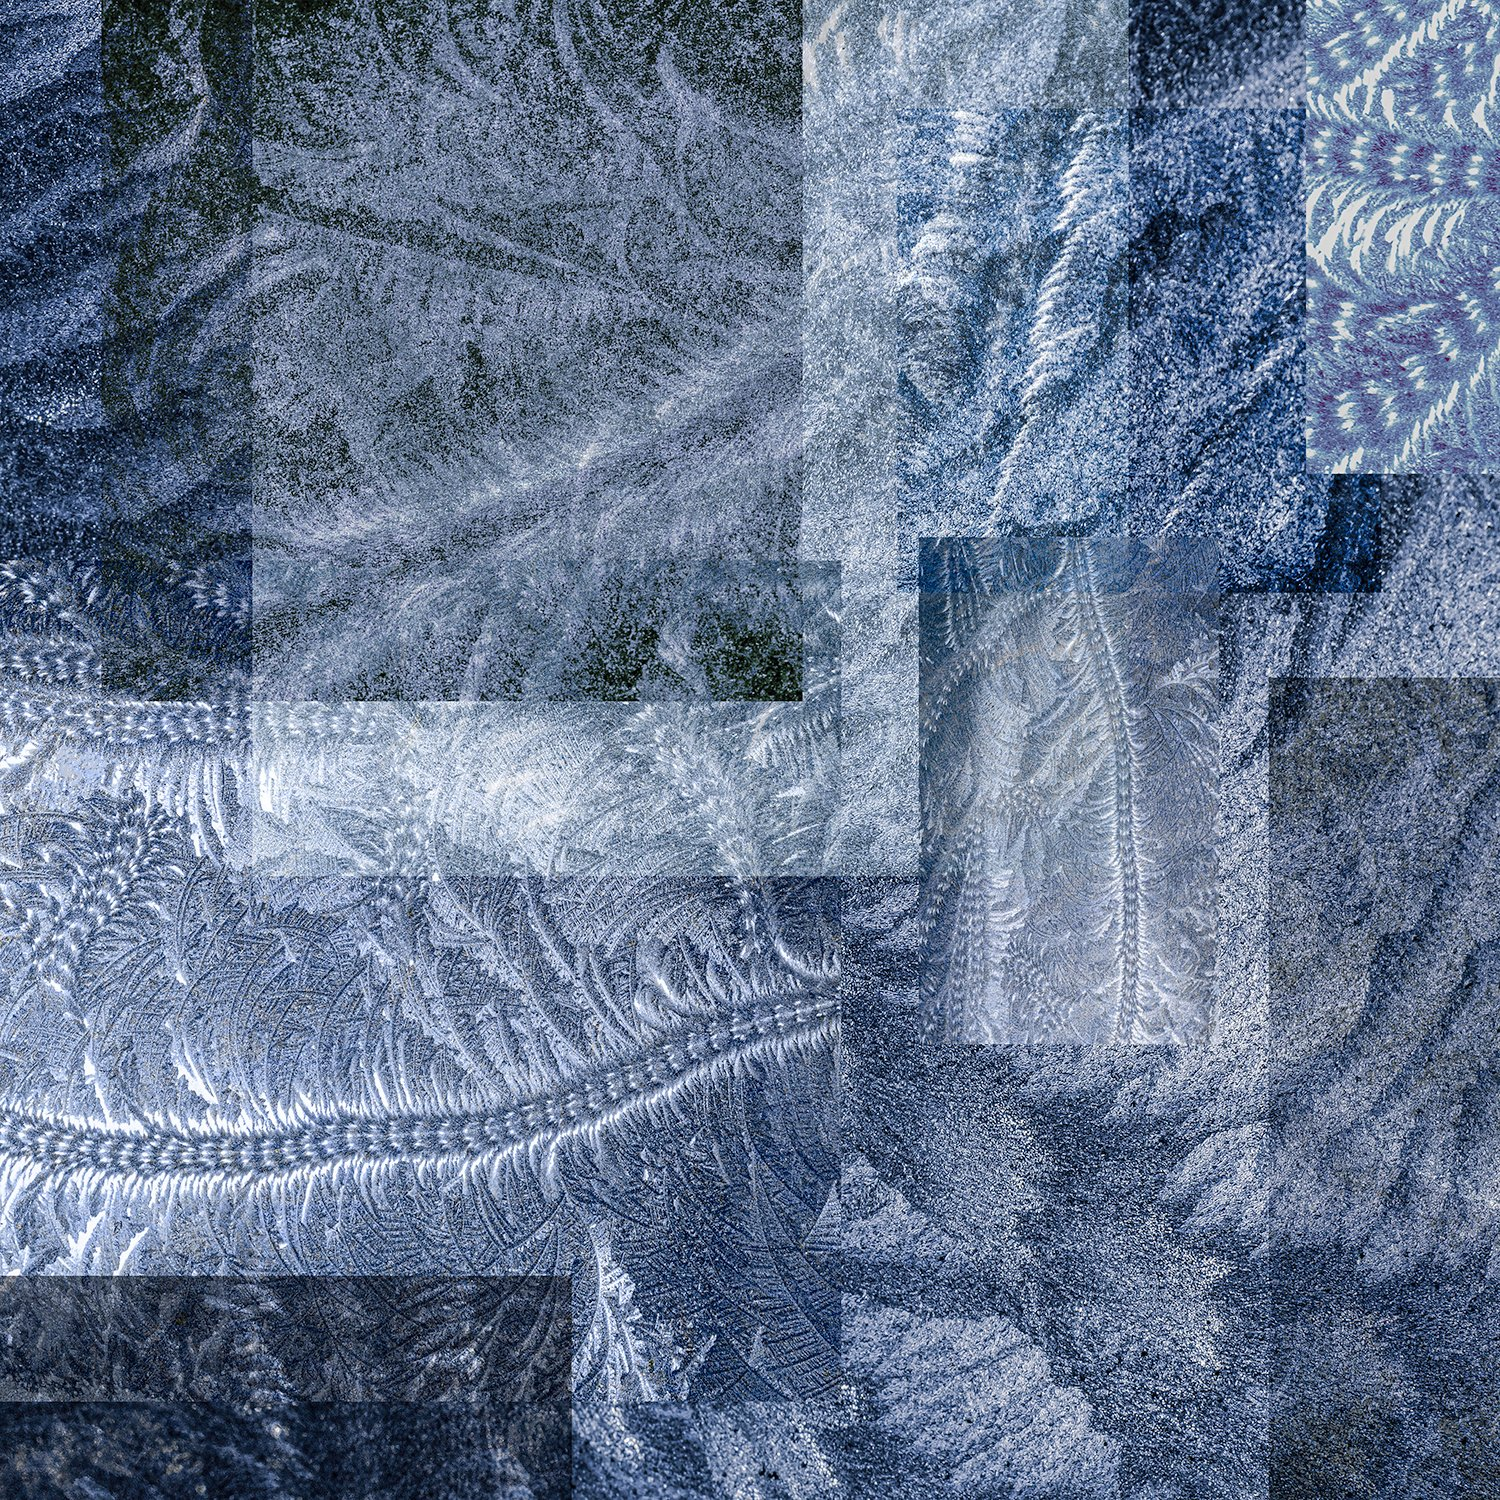 collage-shapes-textures-black-frost-patterns-blue-dark-grey-pressed-glass-fern-scroll